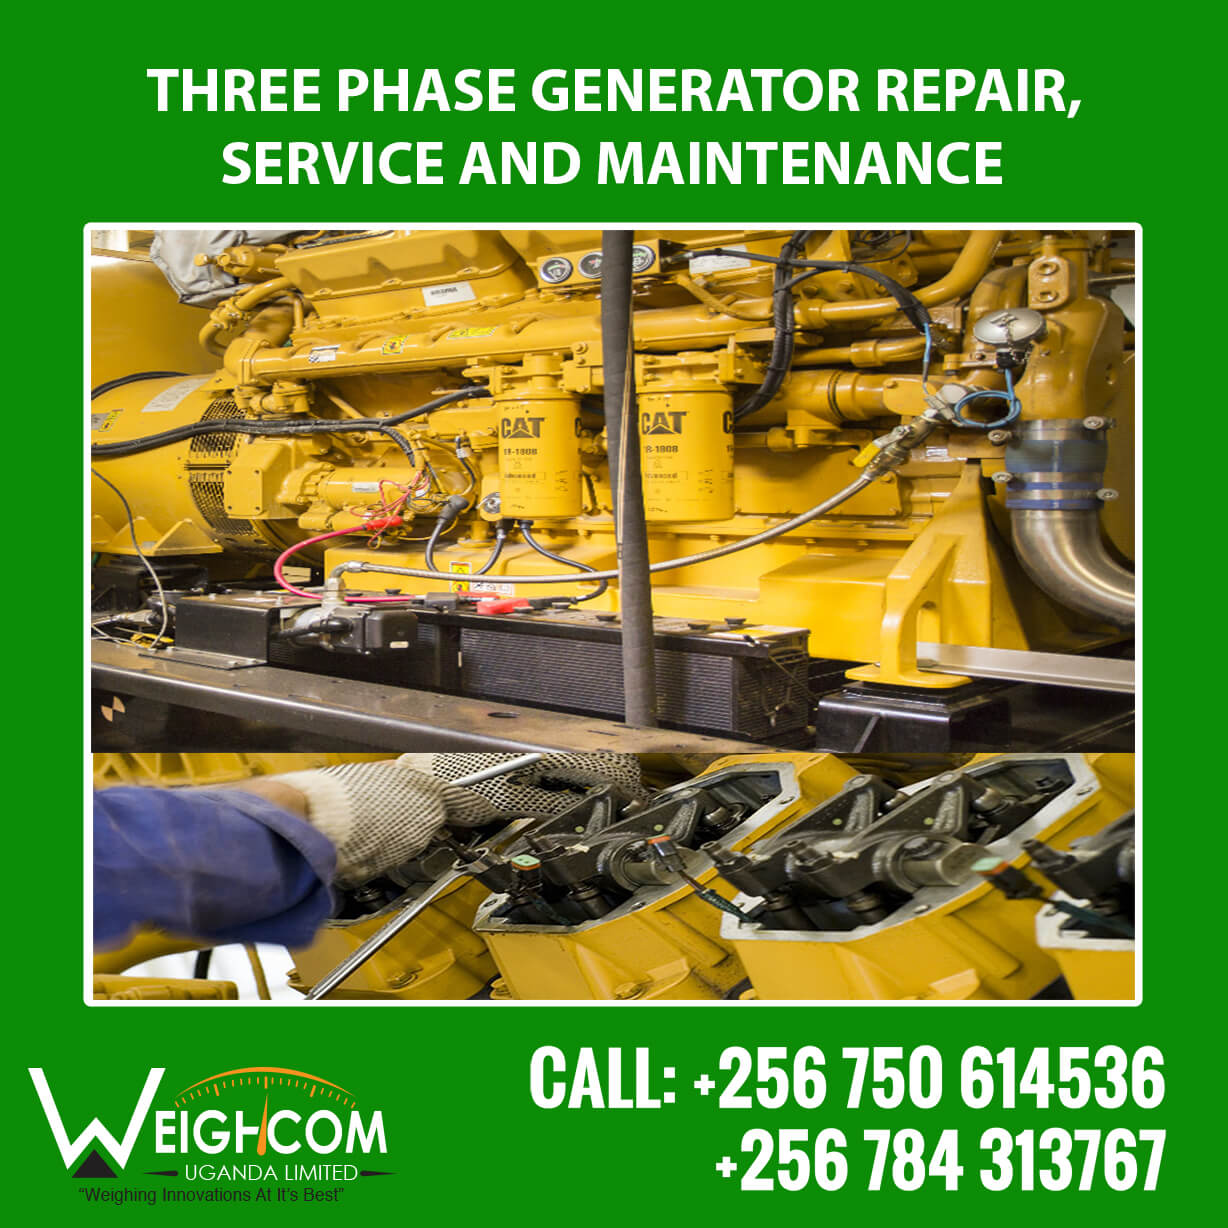 who performs diesel generator repair services in uganda? we do.